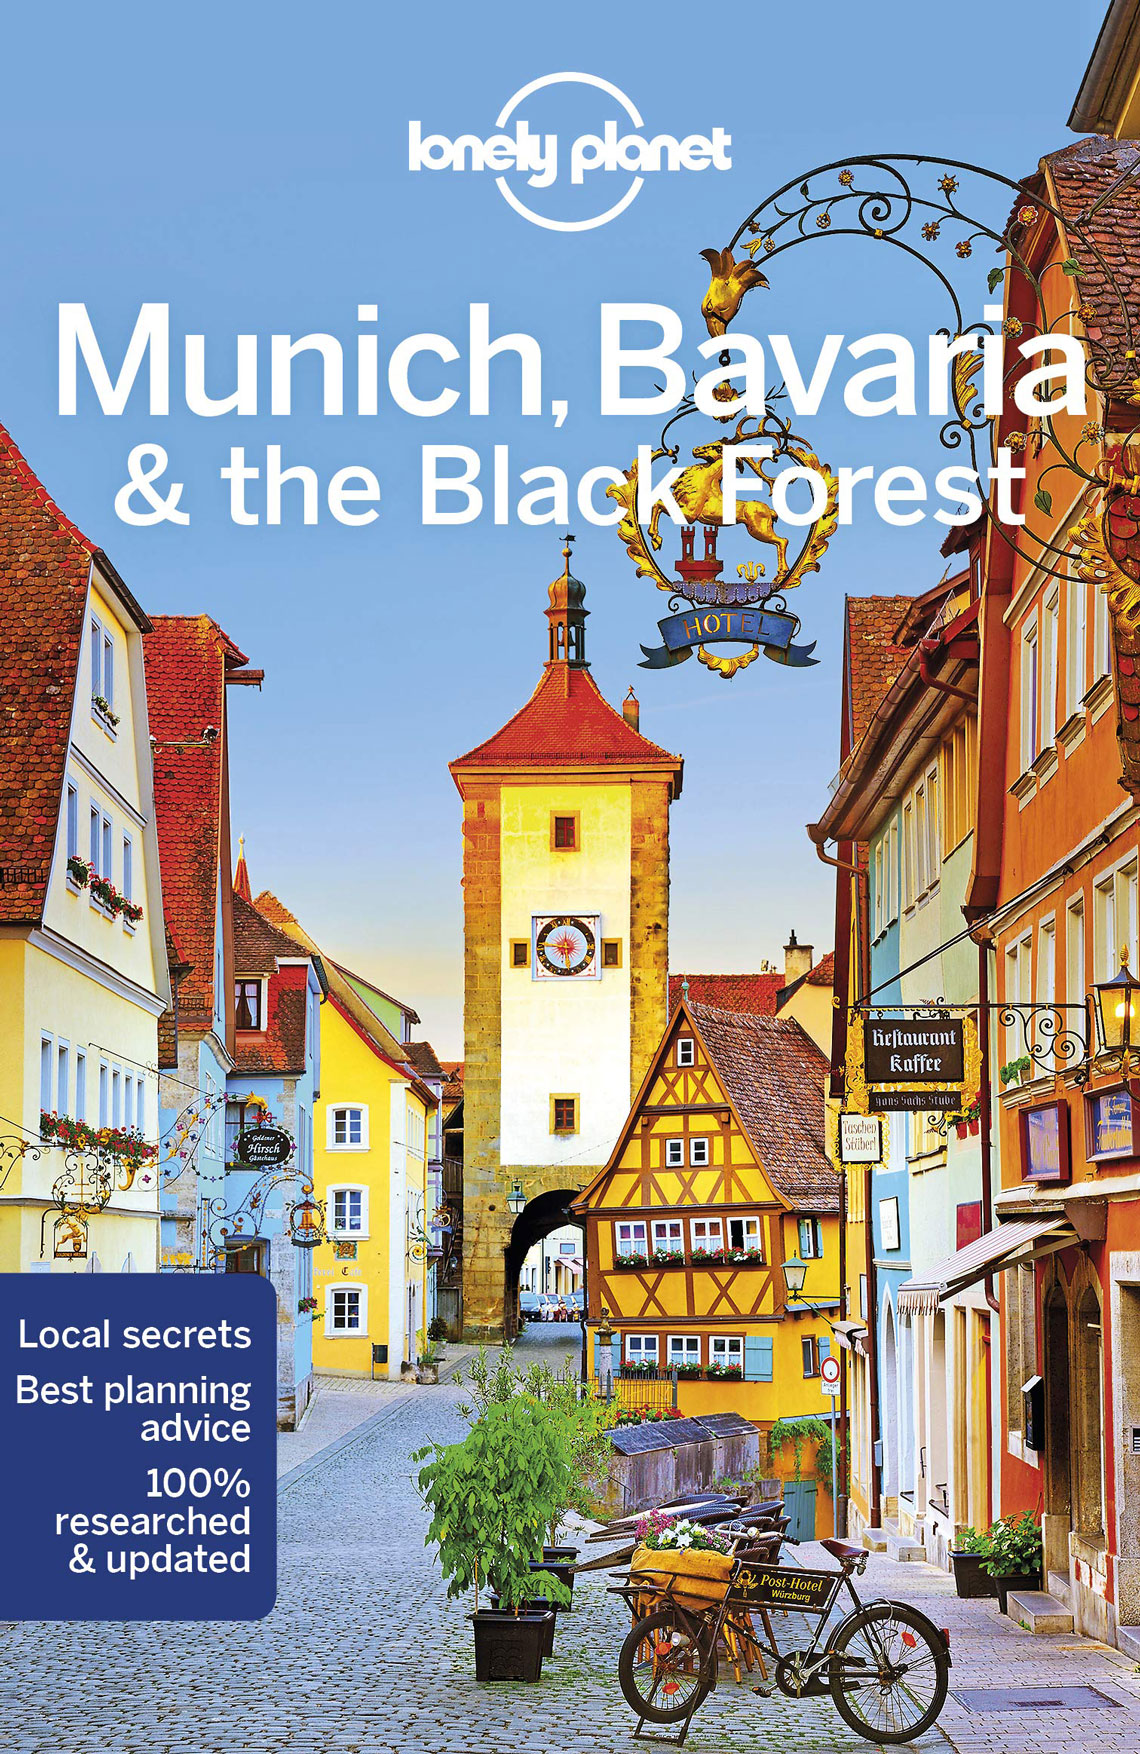 LP_Munich_Bavaria__BlackForest_6_APF